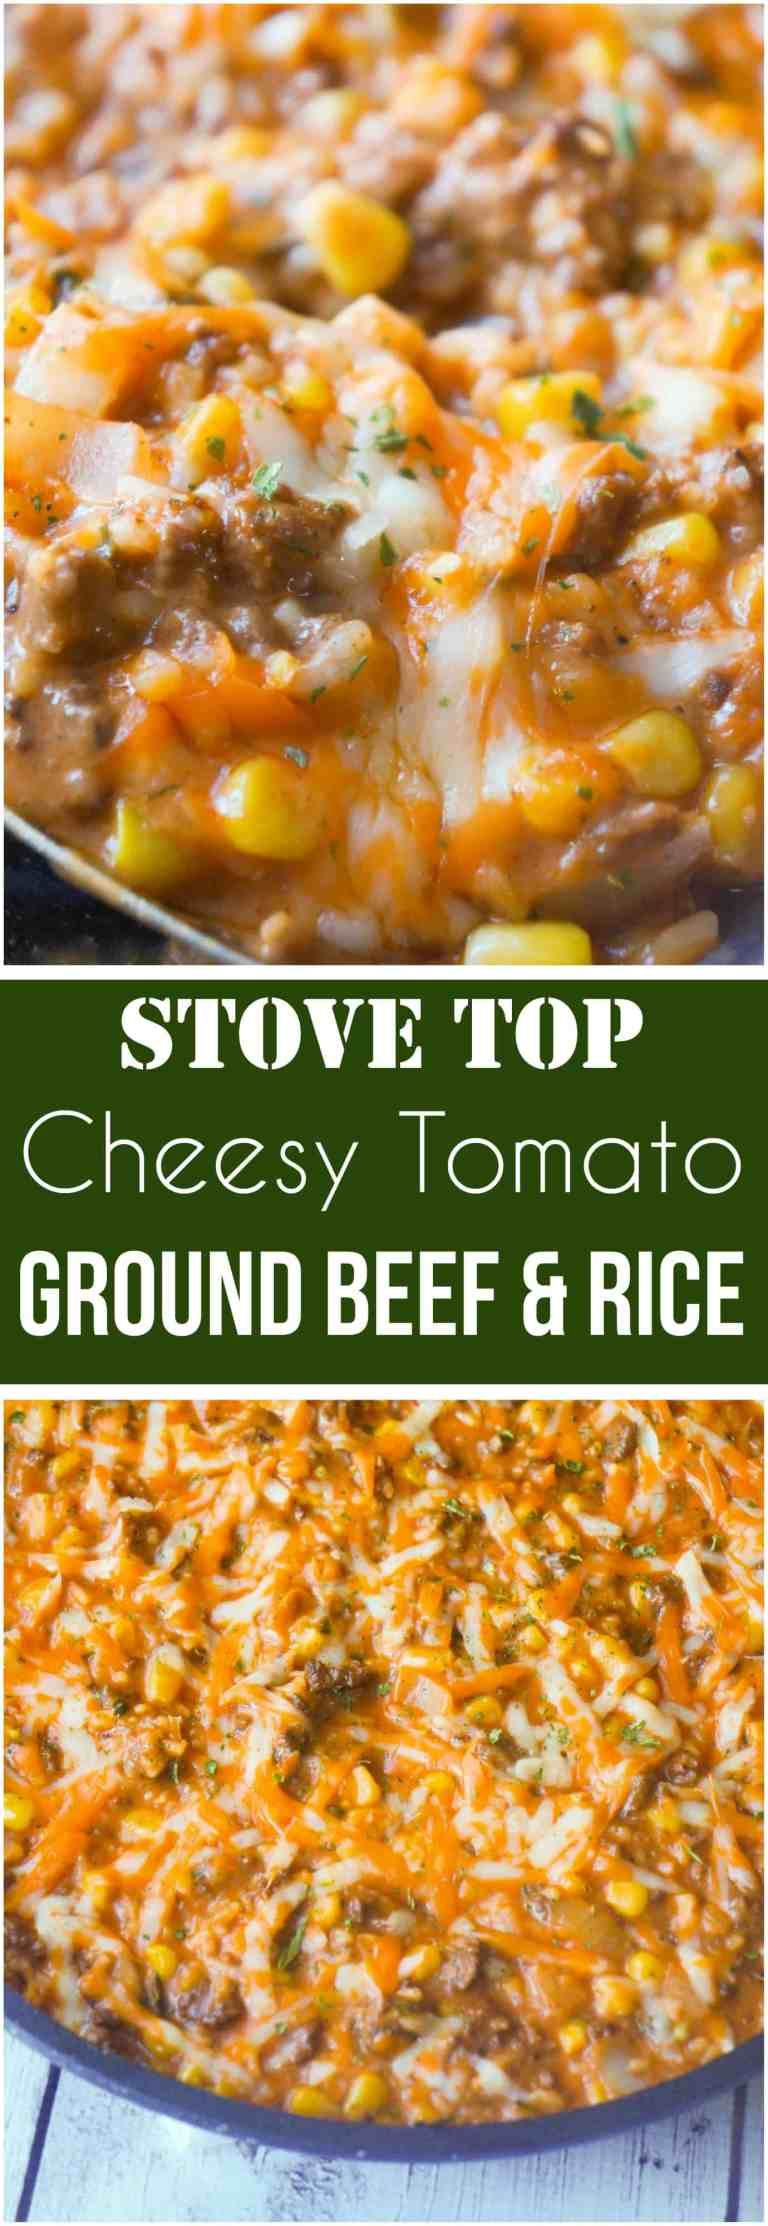 Cheesy Tomato Ground Beef And Rice Is An Easy Stove Top Dinner Recipe Packed With Flavour This Ground Beef D Beef Dinner Top Dinner Recipes Ground Beef Dishes